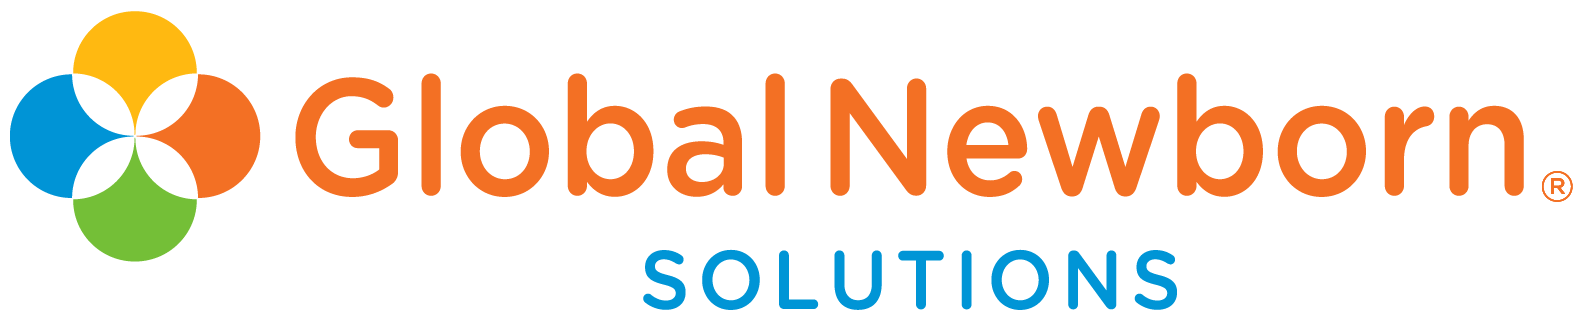 Global Newborn Solutions